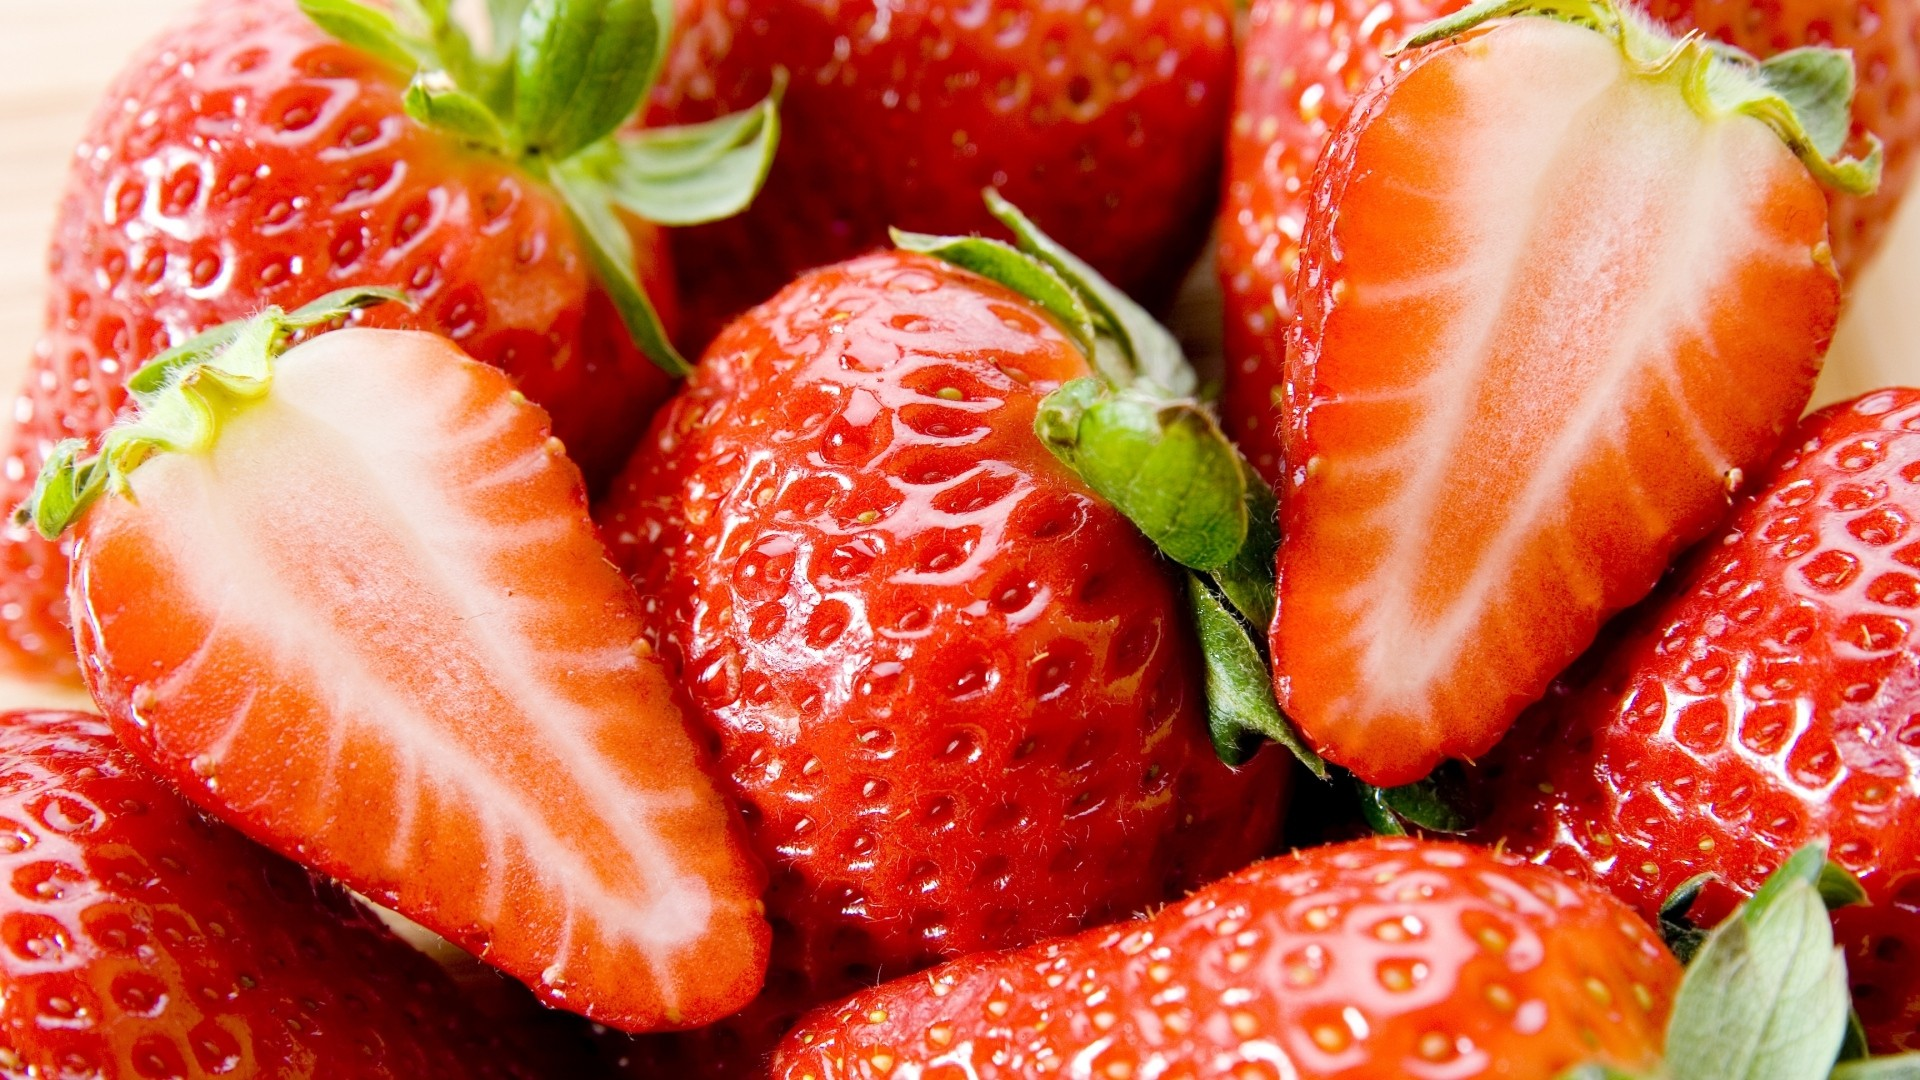 Strawberry Wallpaper for pc